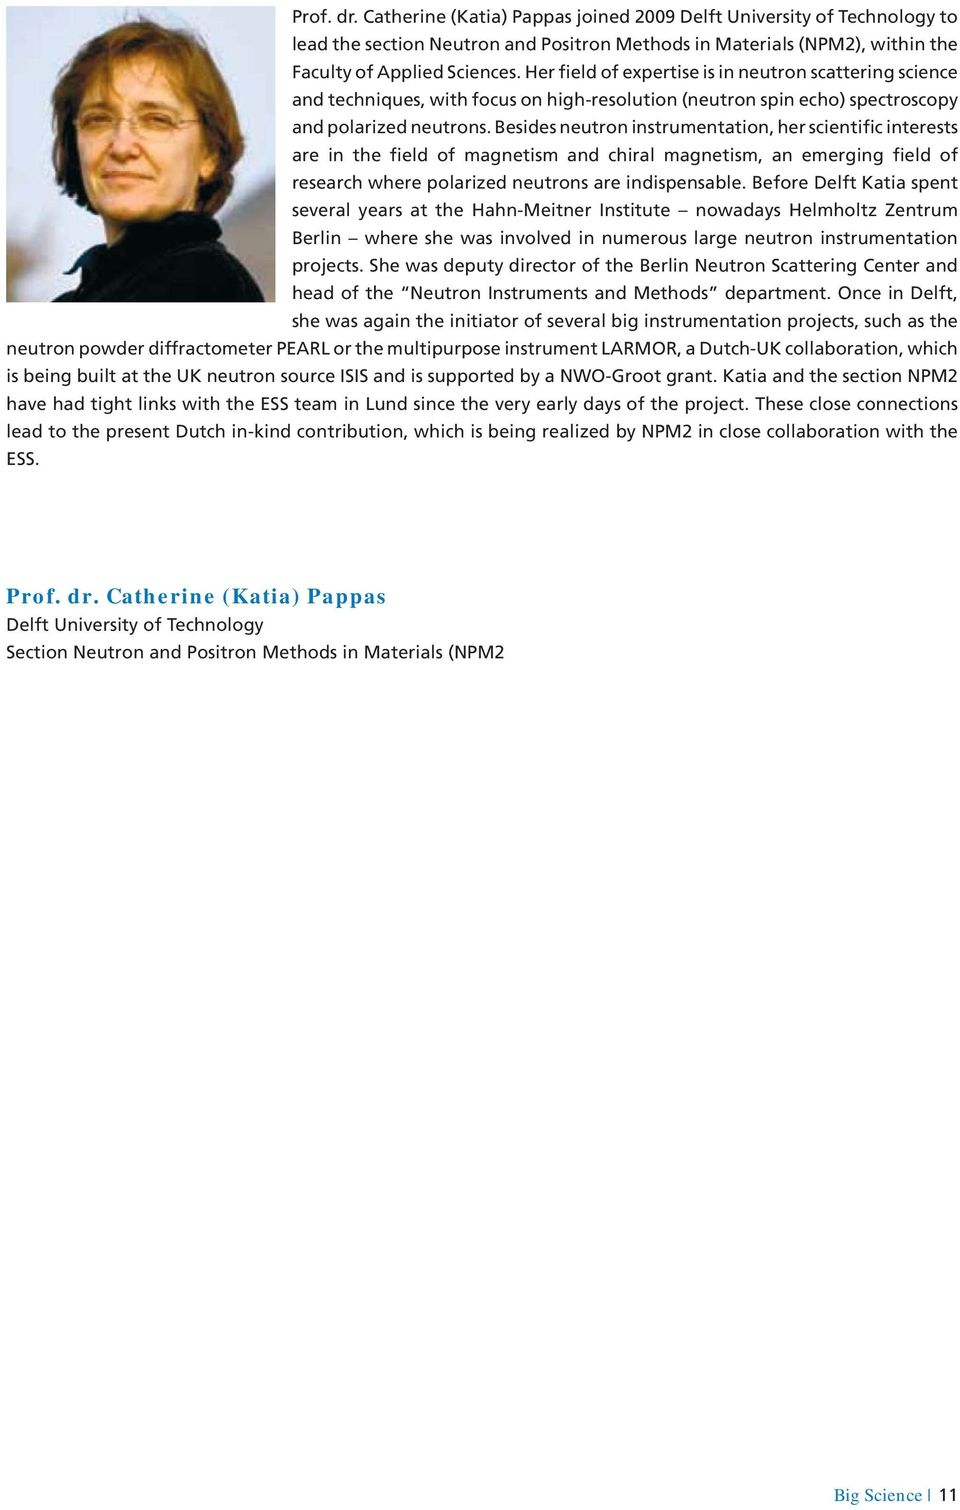 Besides neutron instrumentation, her scientific interests are in the field of magnetism and chiral magnetism, an emerging field of research where polarized neutrons are indispensable.